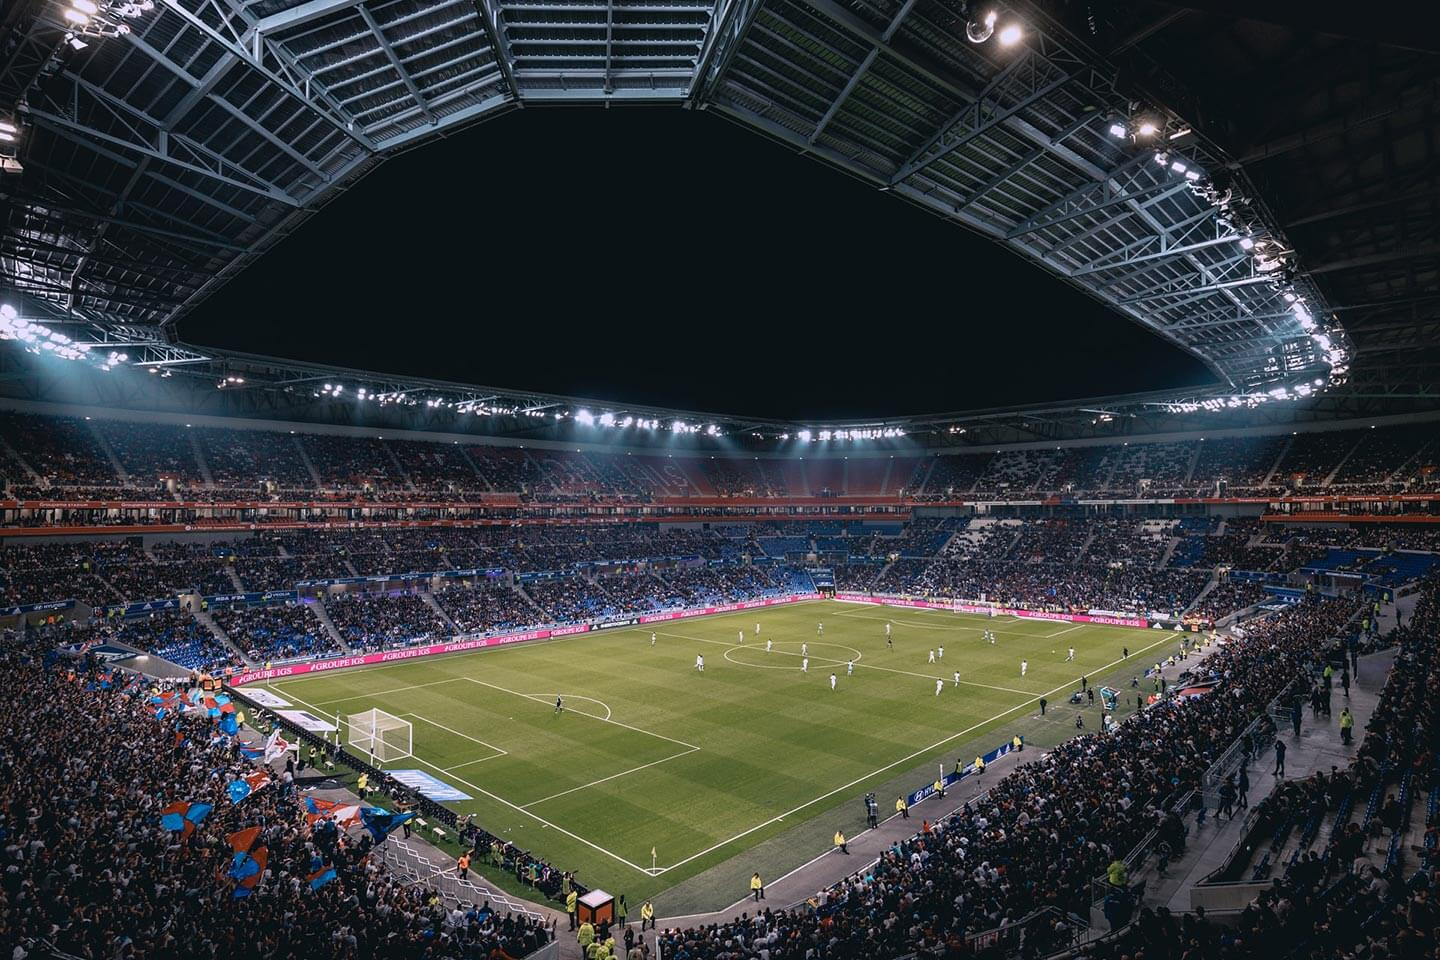 A panorama of a football stadium full of fans